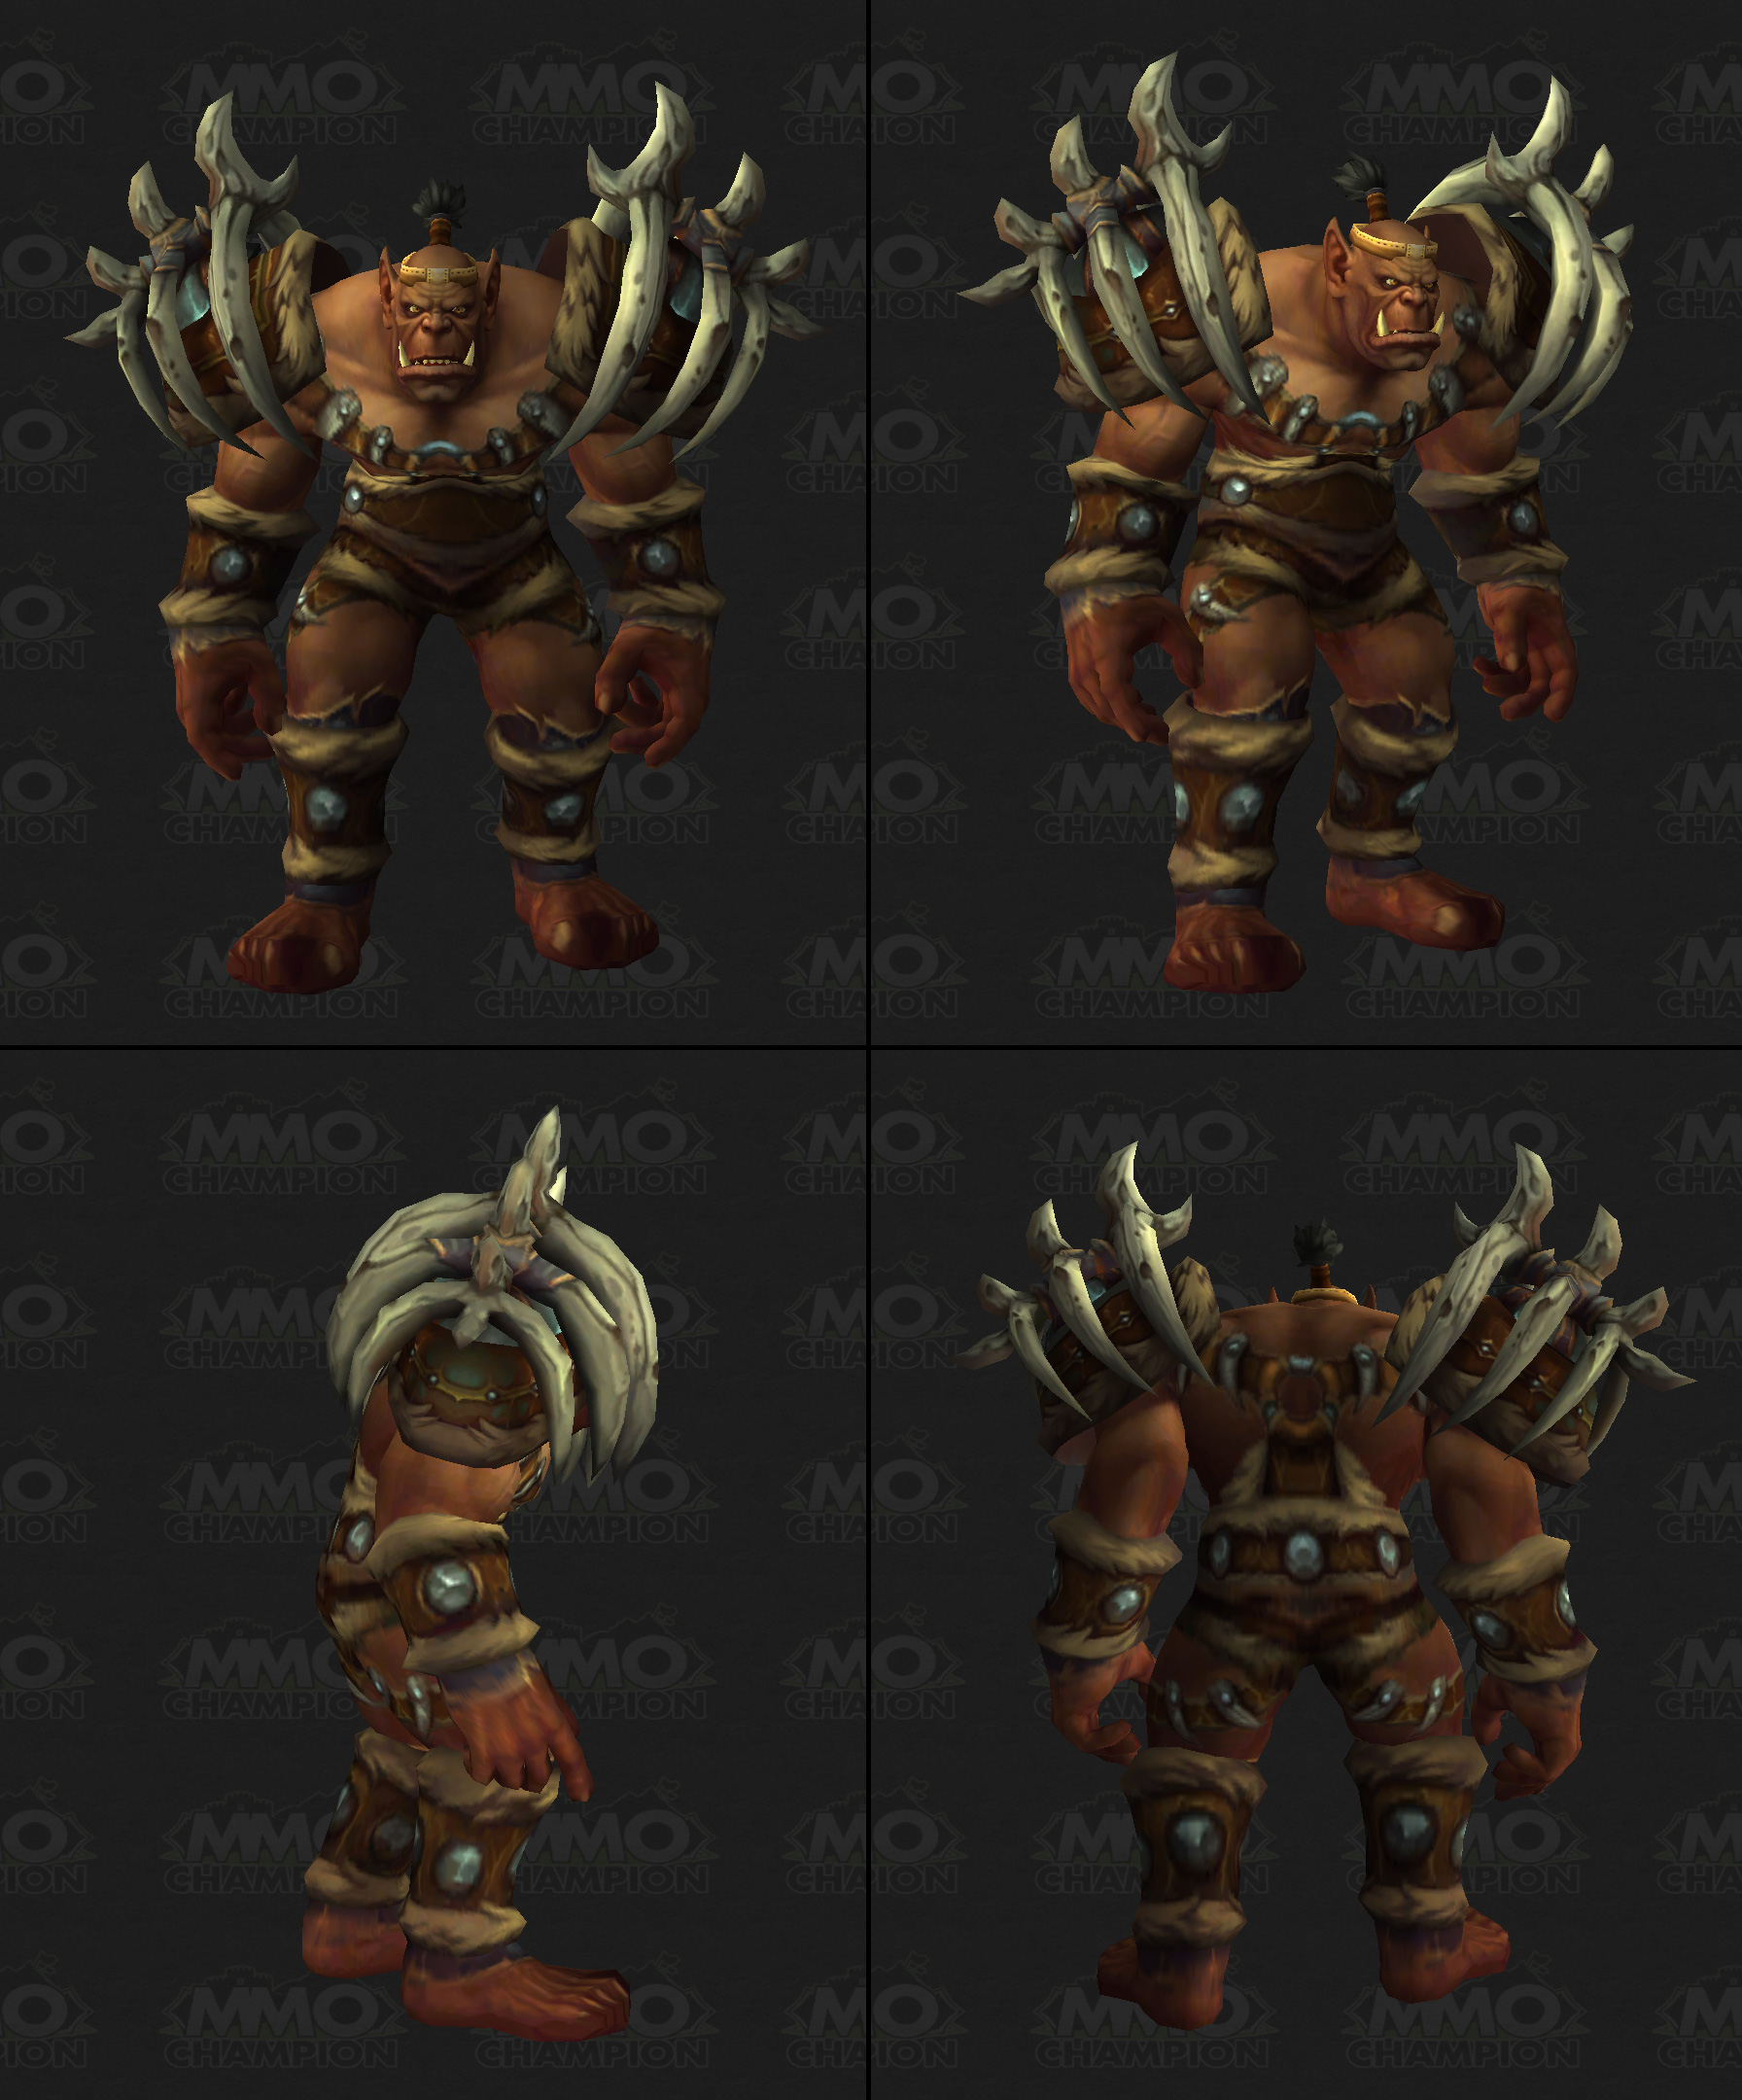 Warlords of Draenor - New Mage Spells, Orc Clan Armor Sets, Blue